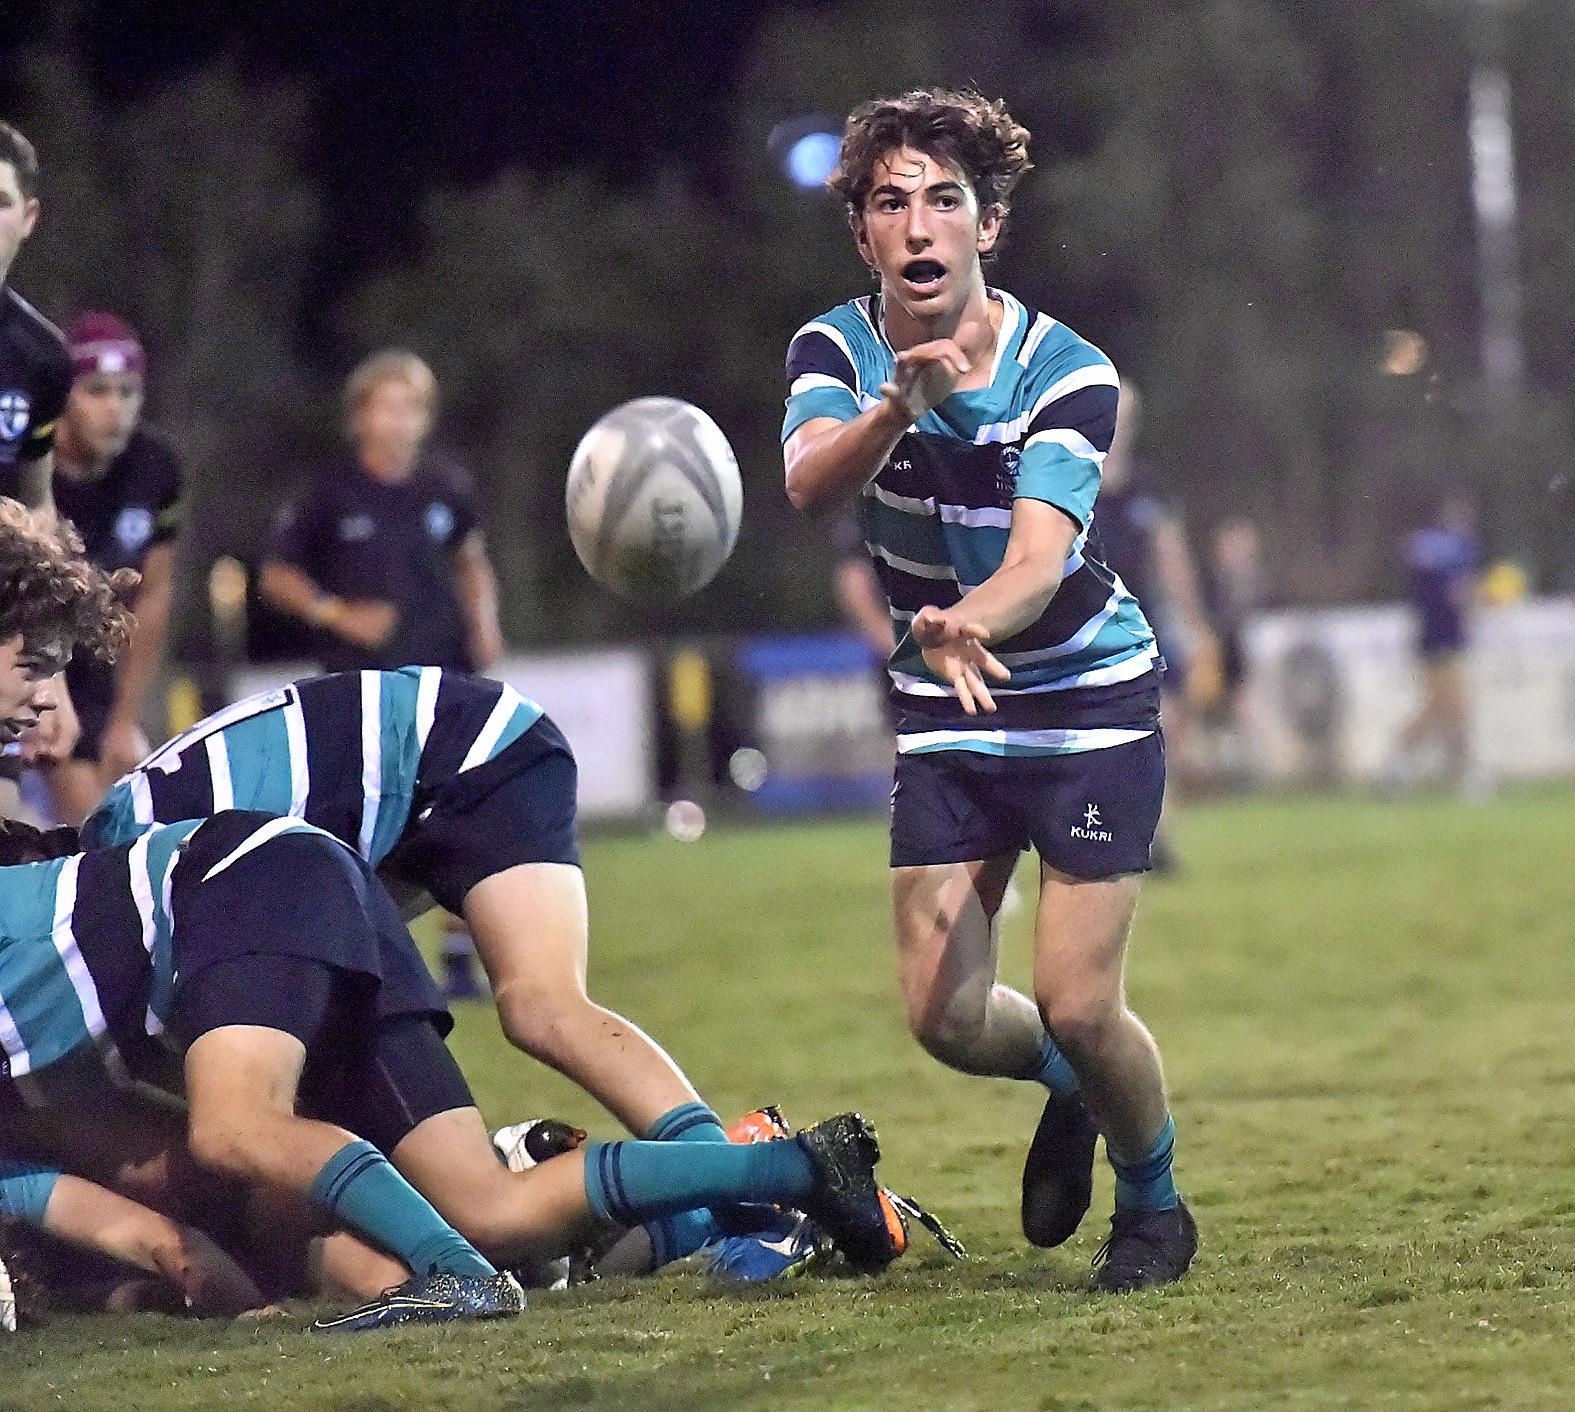 Siena against Matthew Flinders First XV rugby union match last week (May 8). Matthew Flinders player Liam Doherty passes from the scrum.